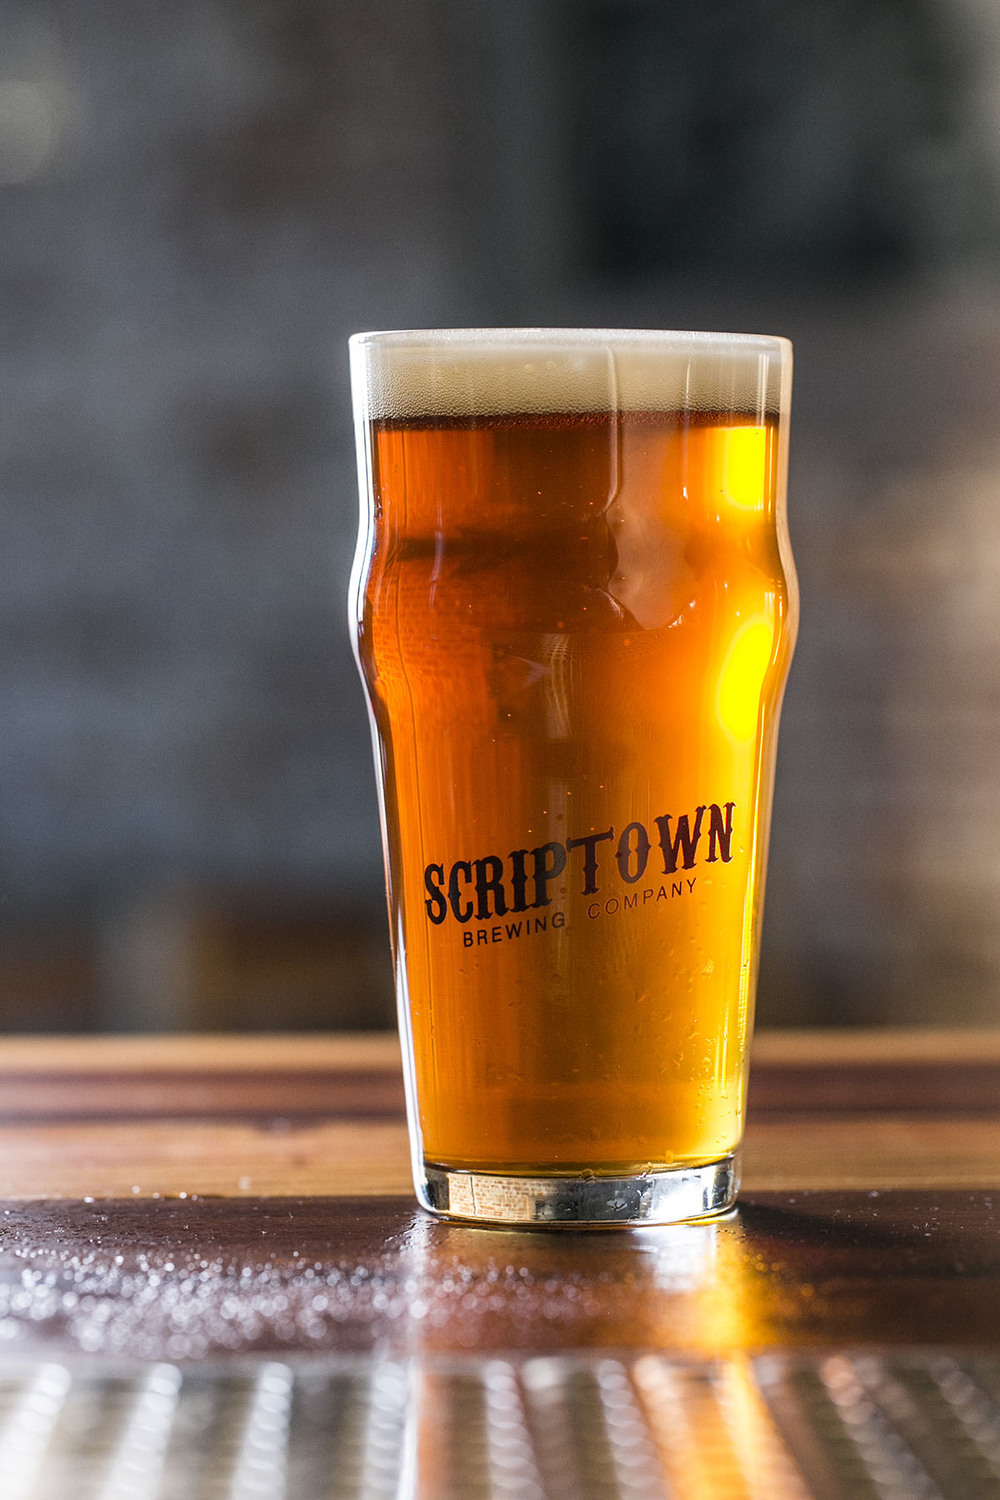 Omaha Drink Photographers - Scripton Brewing Company